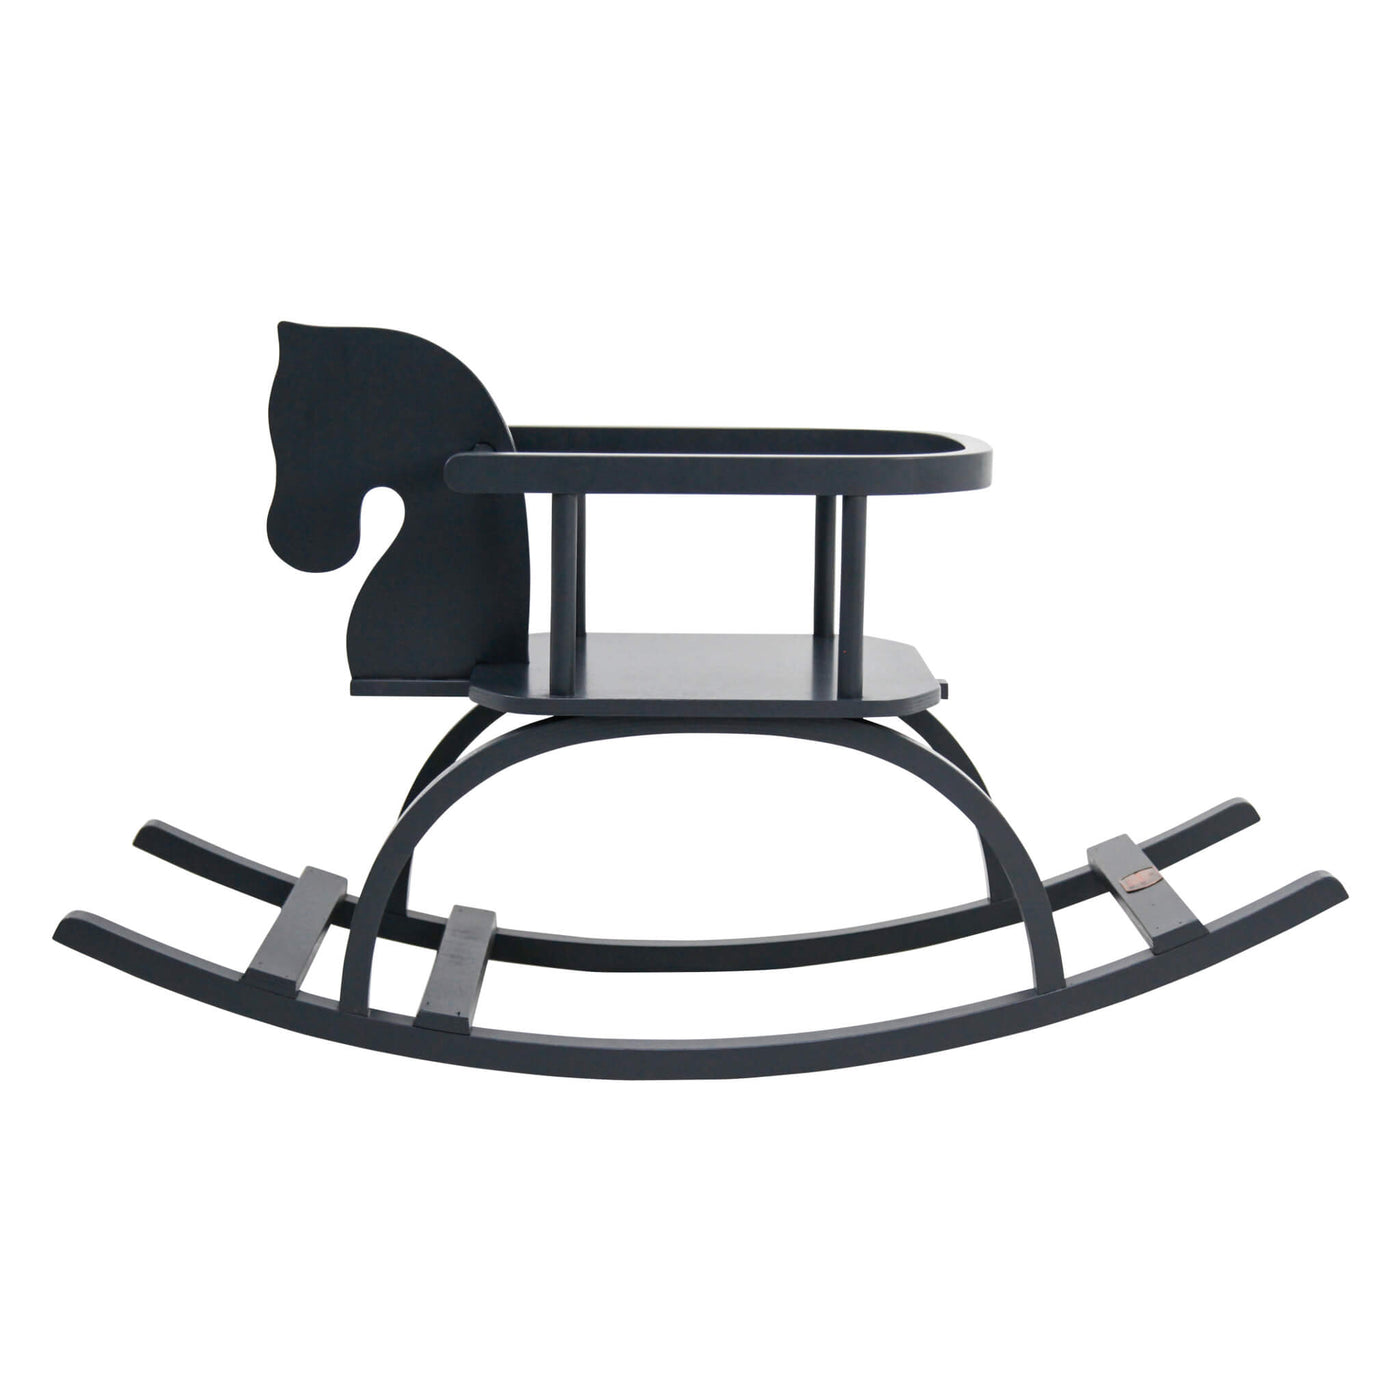 Traditional Rocking Horse - Black